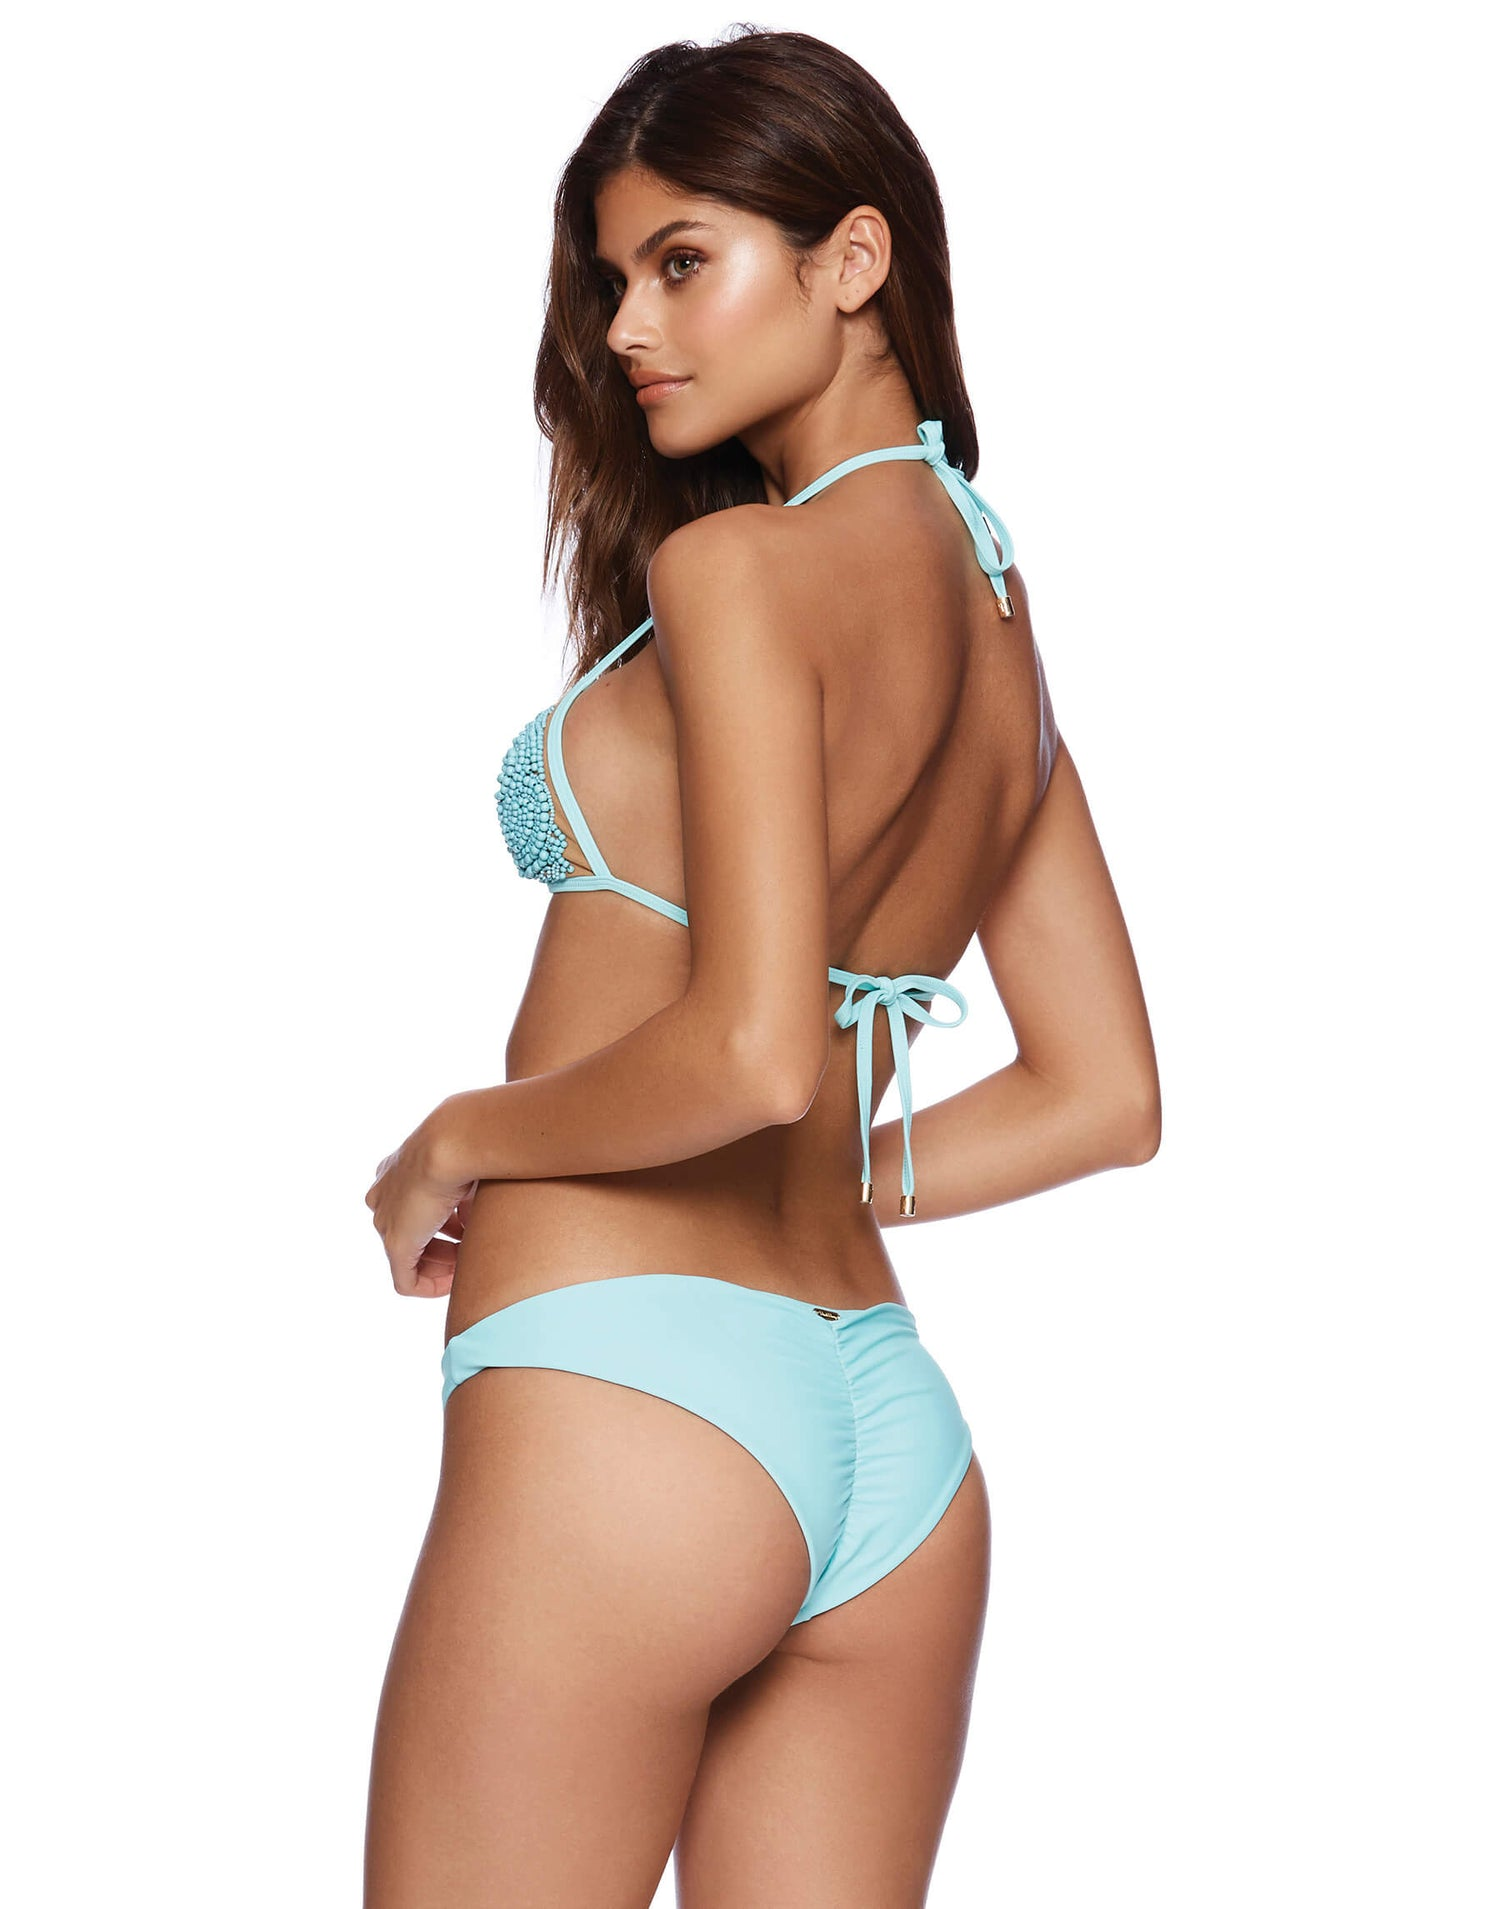 Spellbound Triangle Bikini Top with Beads in Aqua - back view